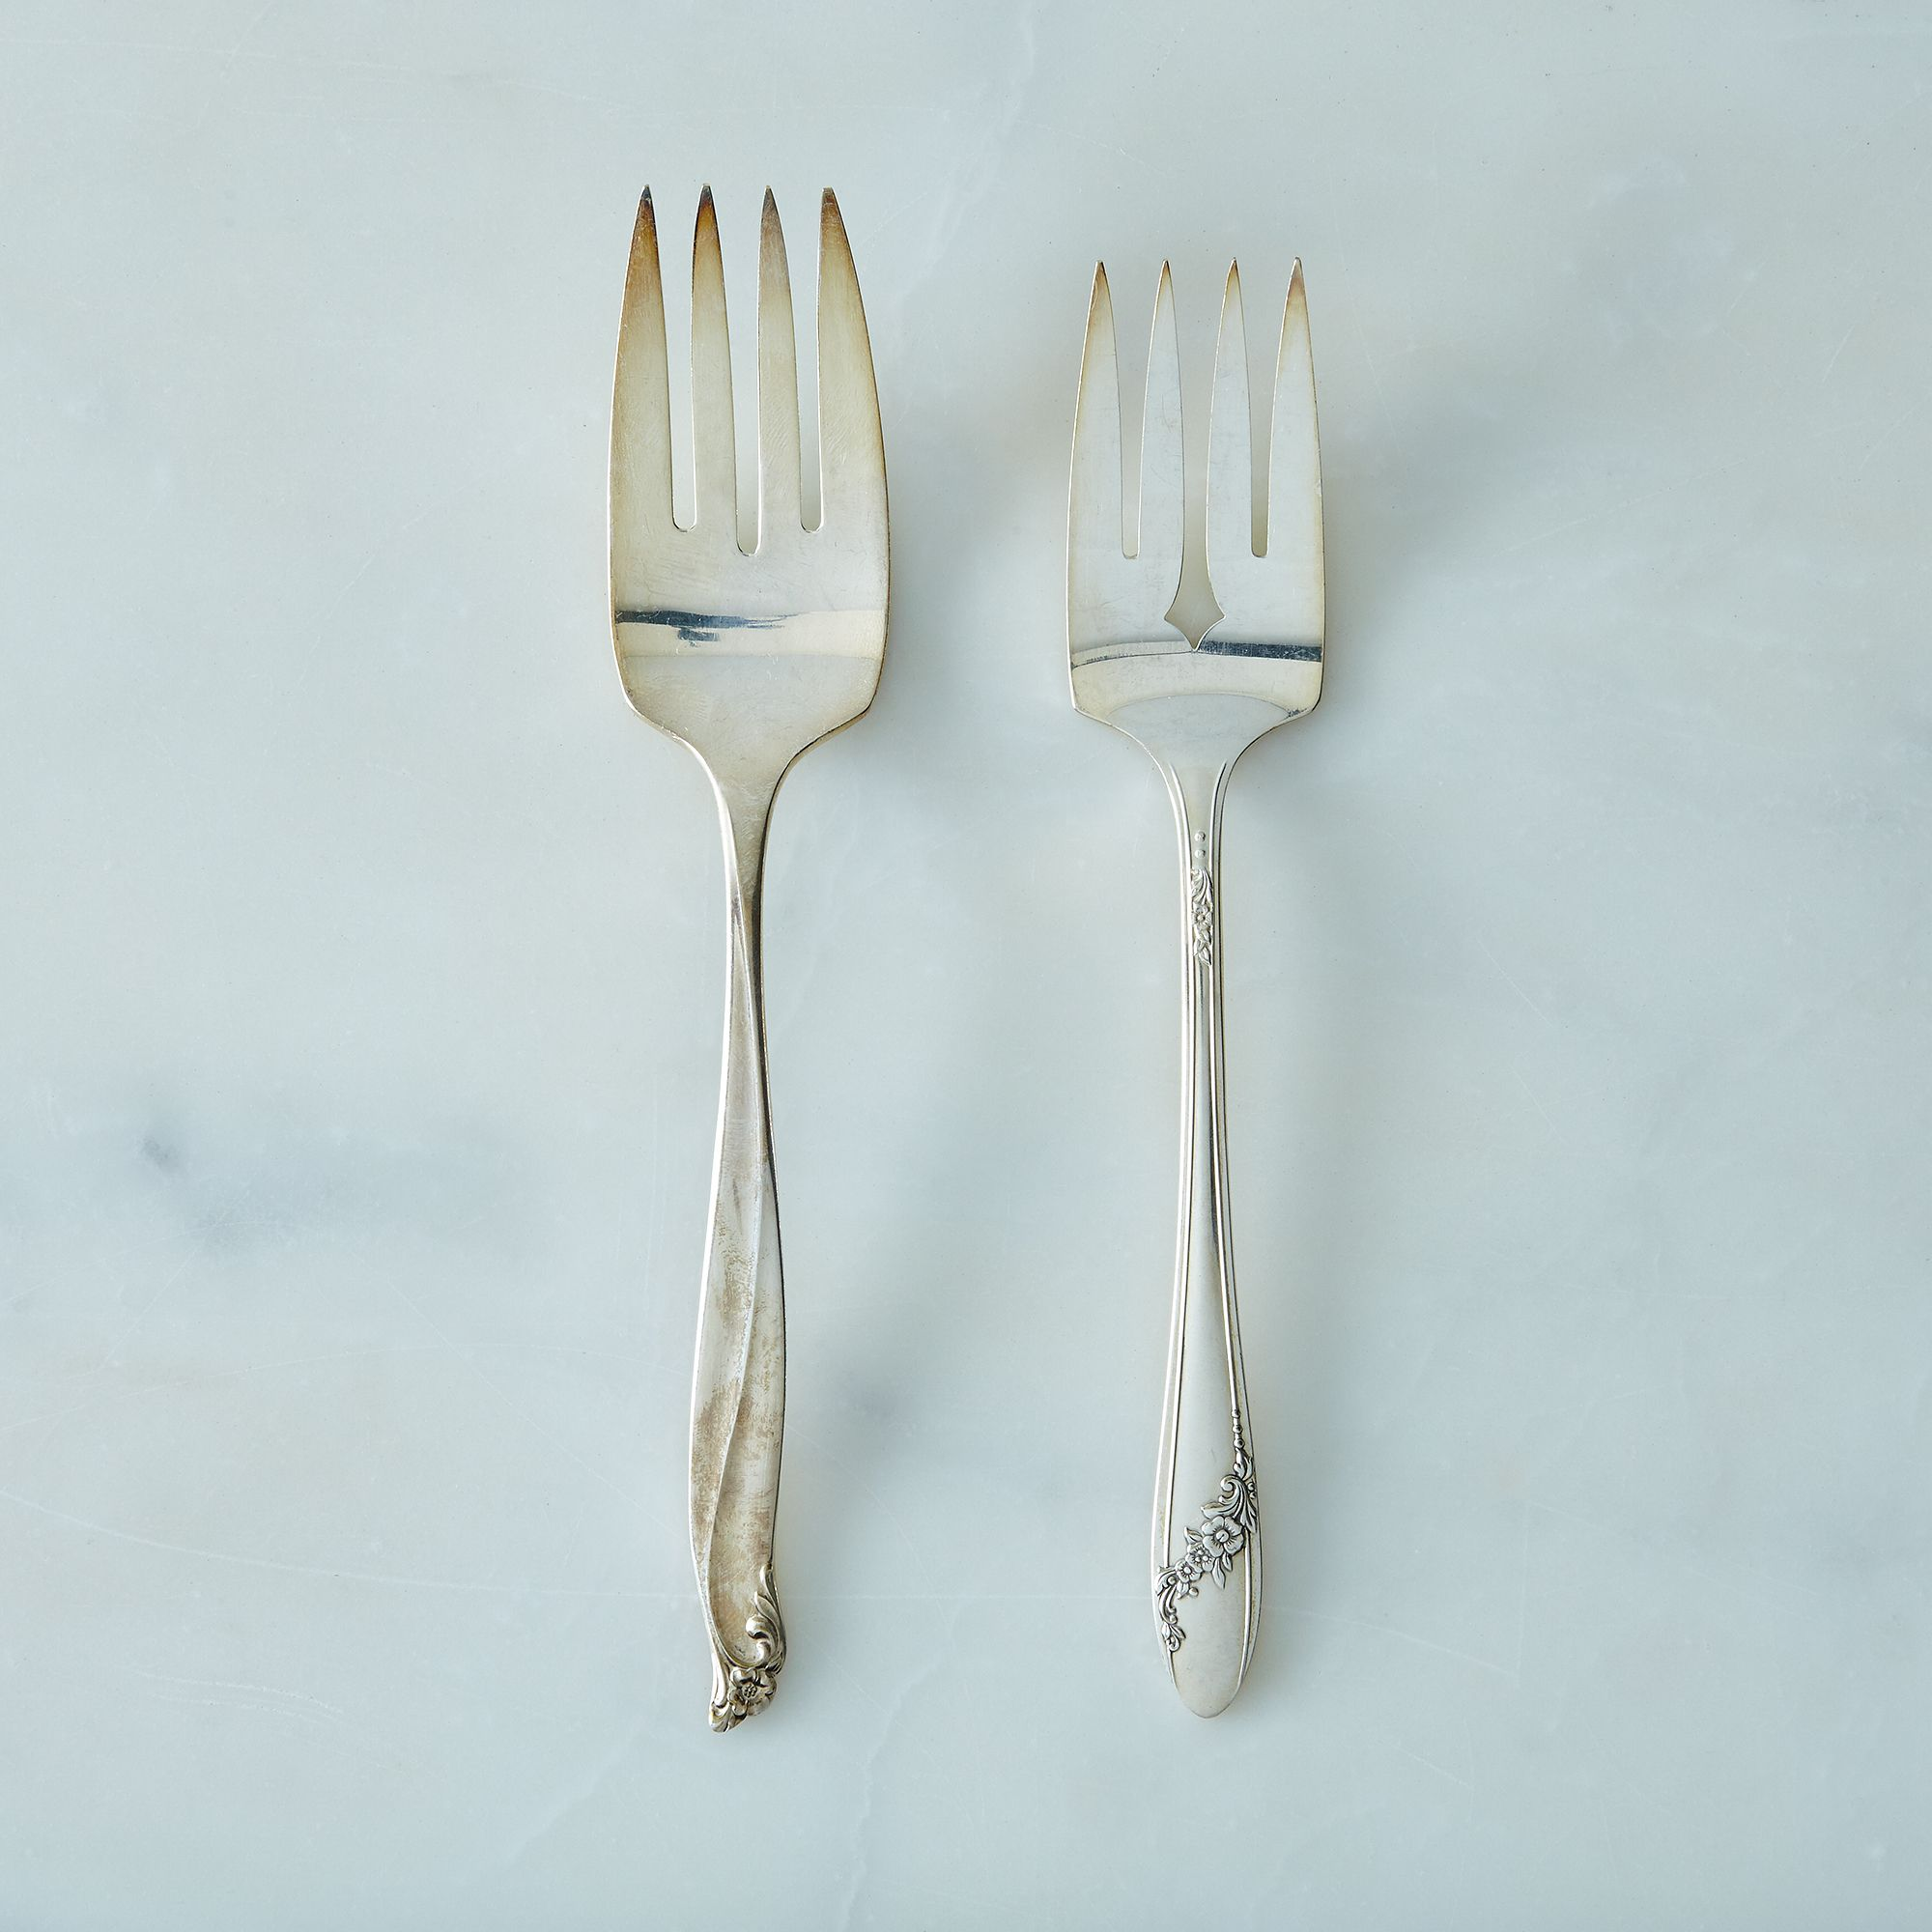 68e1cac3 9855 4f1d 8ef5 7a96a55acdf1  2016 0506 milk and honey vintage serving forks silo rocky luten 012